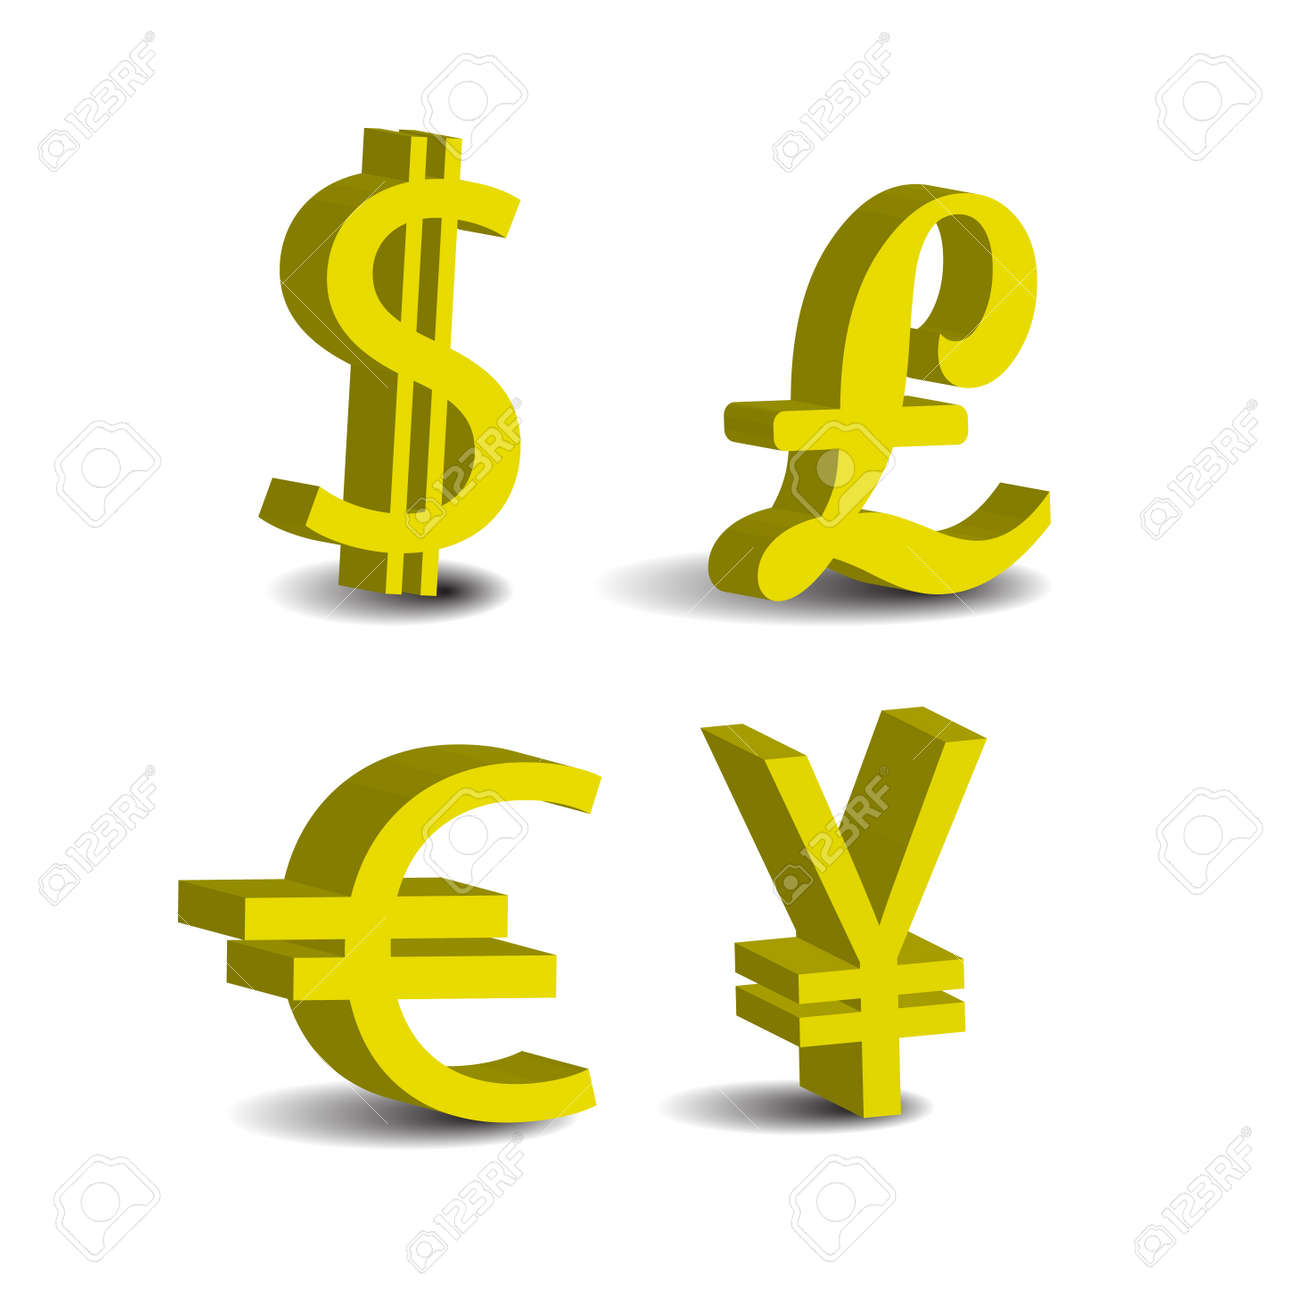 Set of 4 currency 3d symbols usd pound euro yen royalty free set of 4 currency 3d symbols usd pound euro yen stock vector biocorpaavc Images